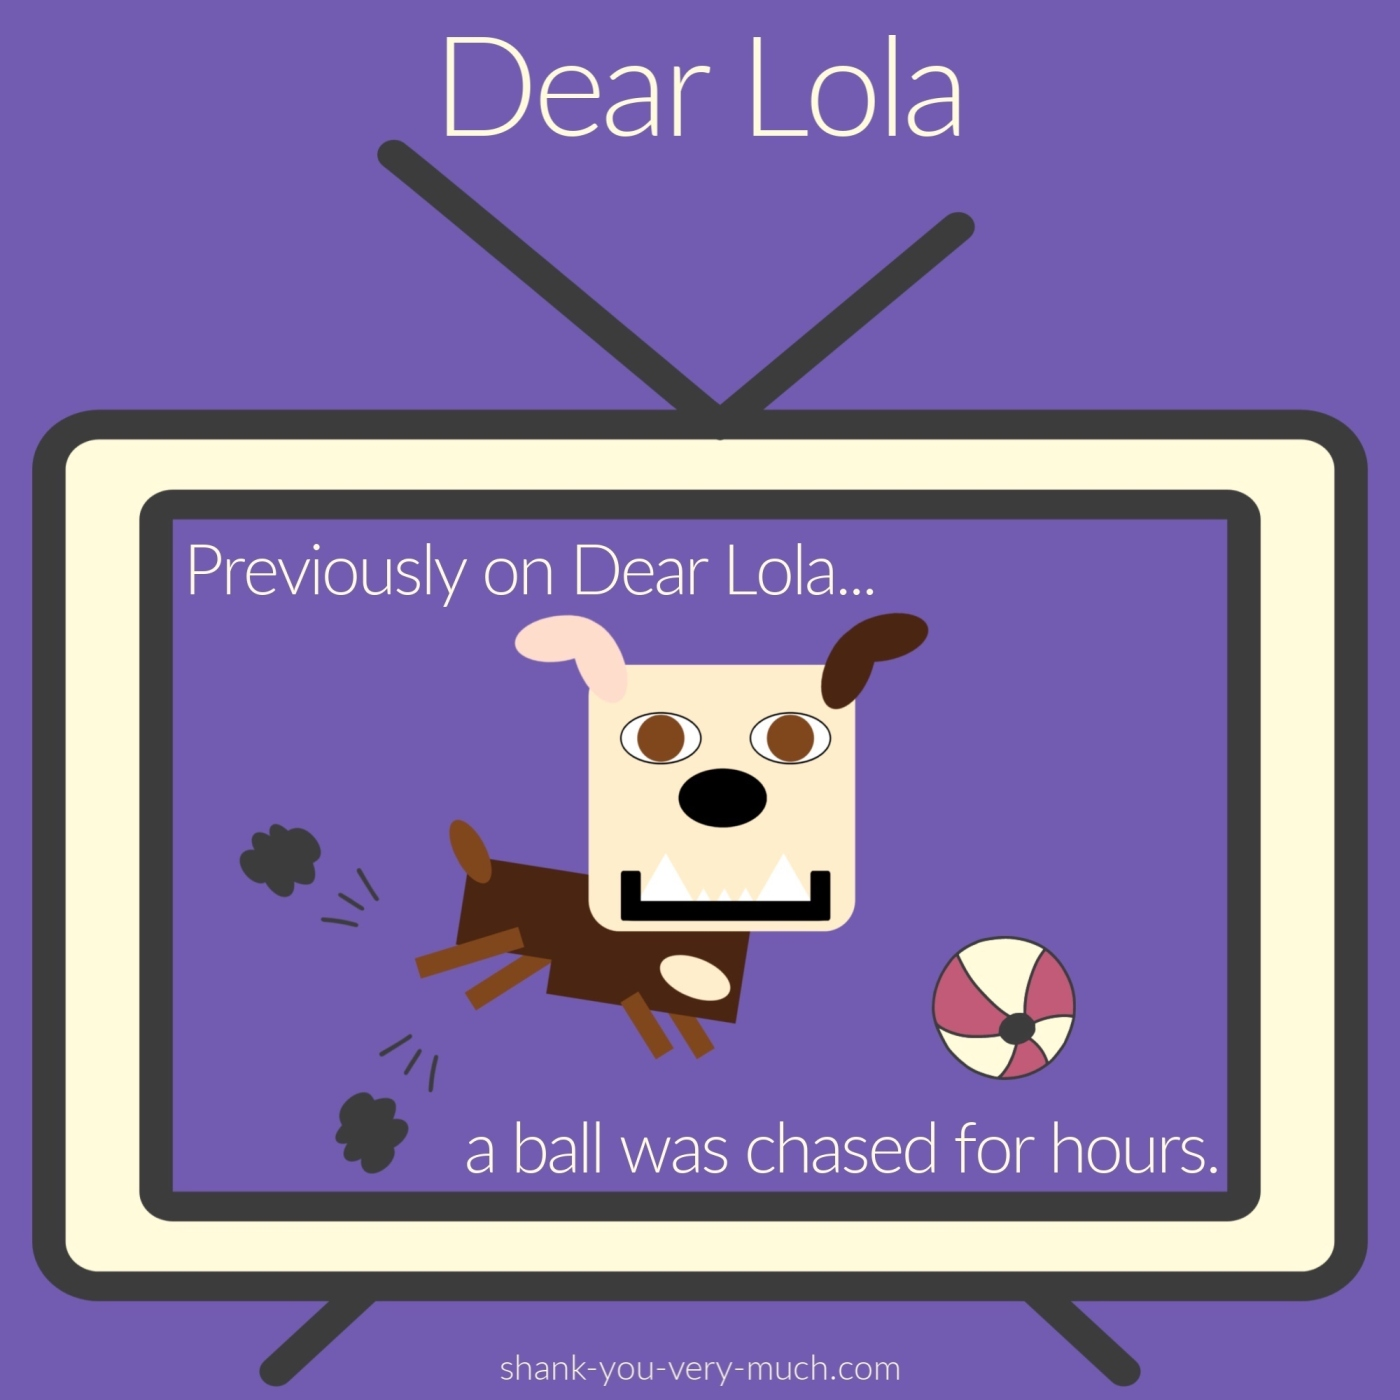 A cartoon rendering of Lola running across a television screen with the phrase 'previously on Dear Lola... a ball was chased for hours.' TV Lola is chasing a ball.